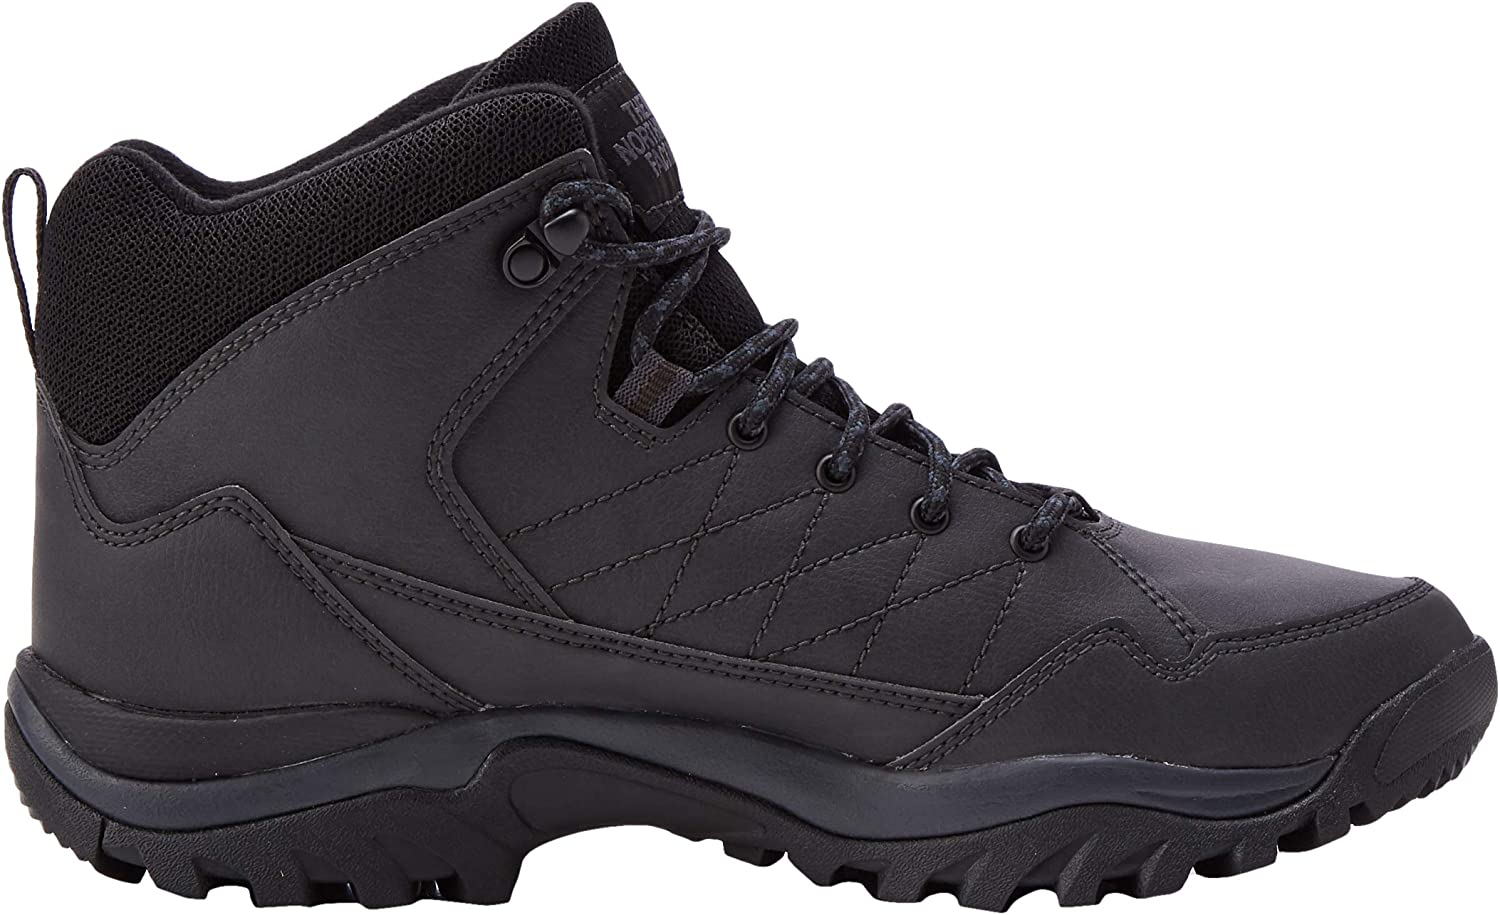 The North Face Mens Storm Strike II WP High Rise Hiking Boot